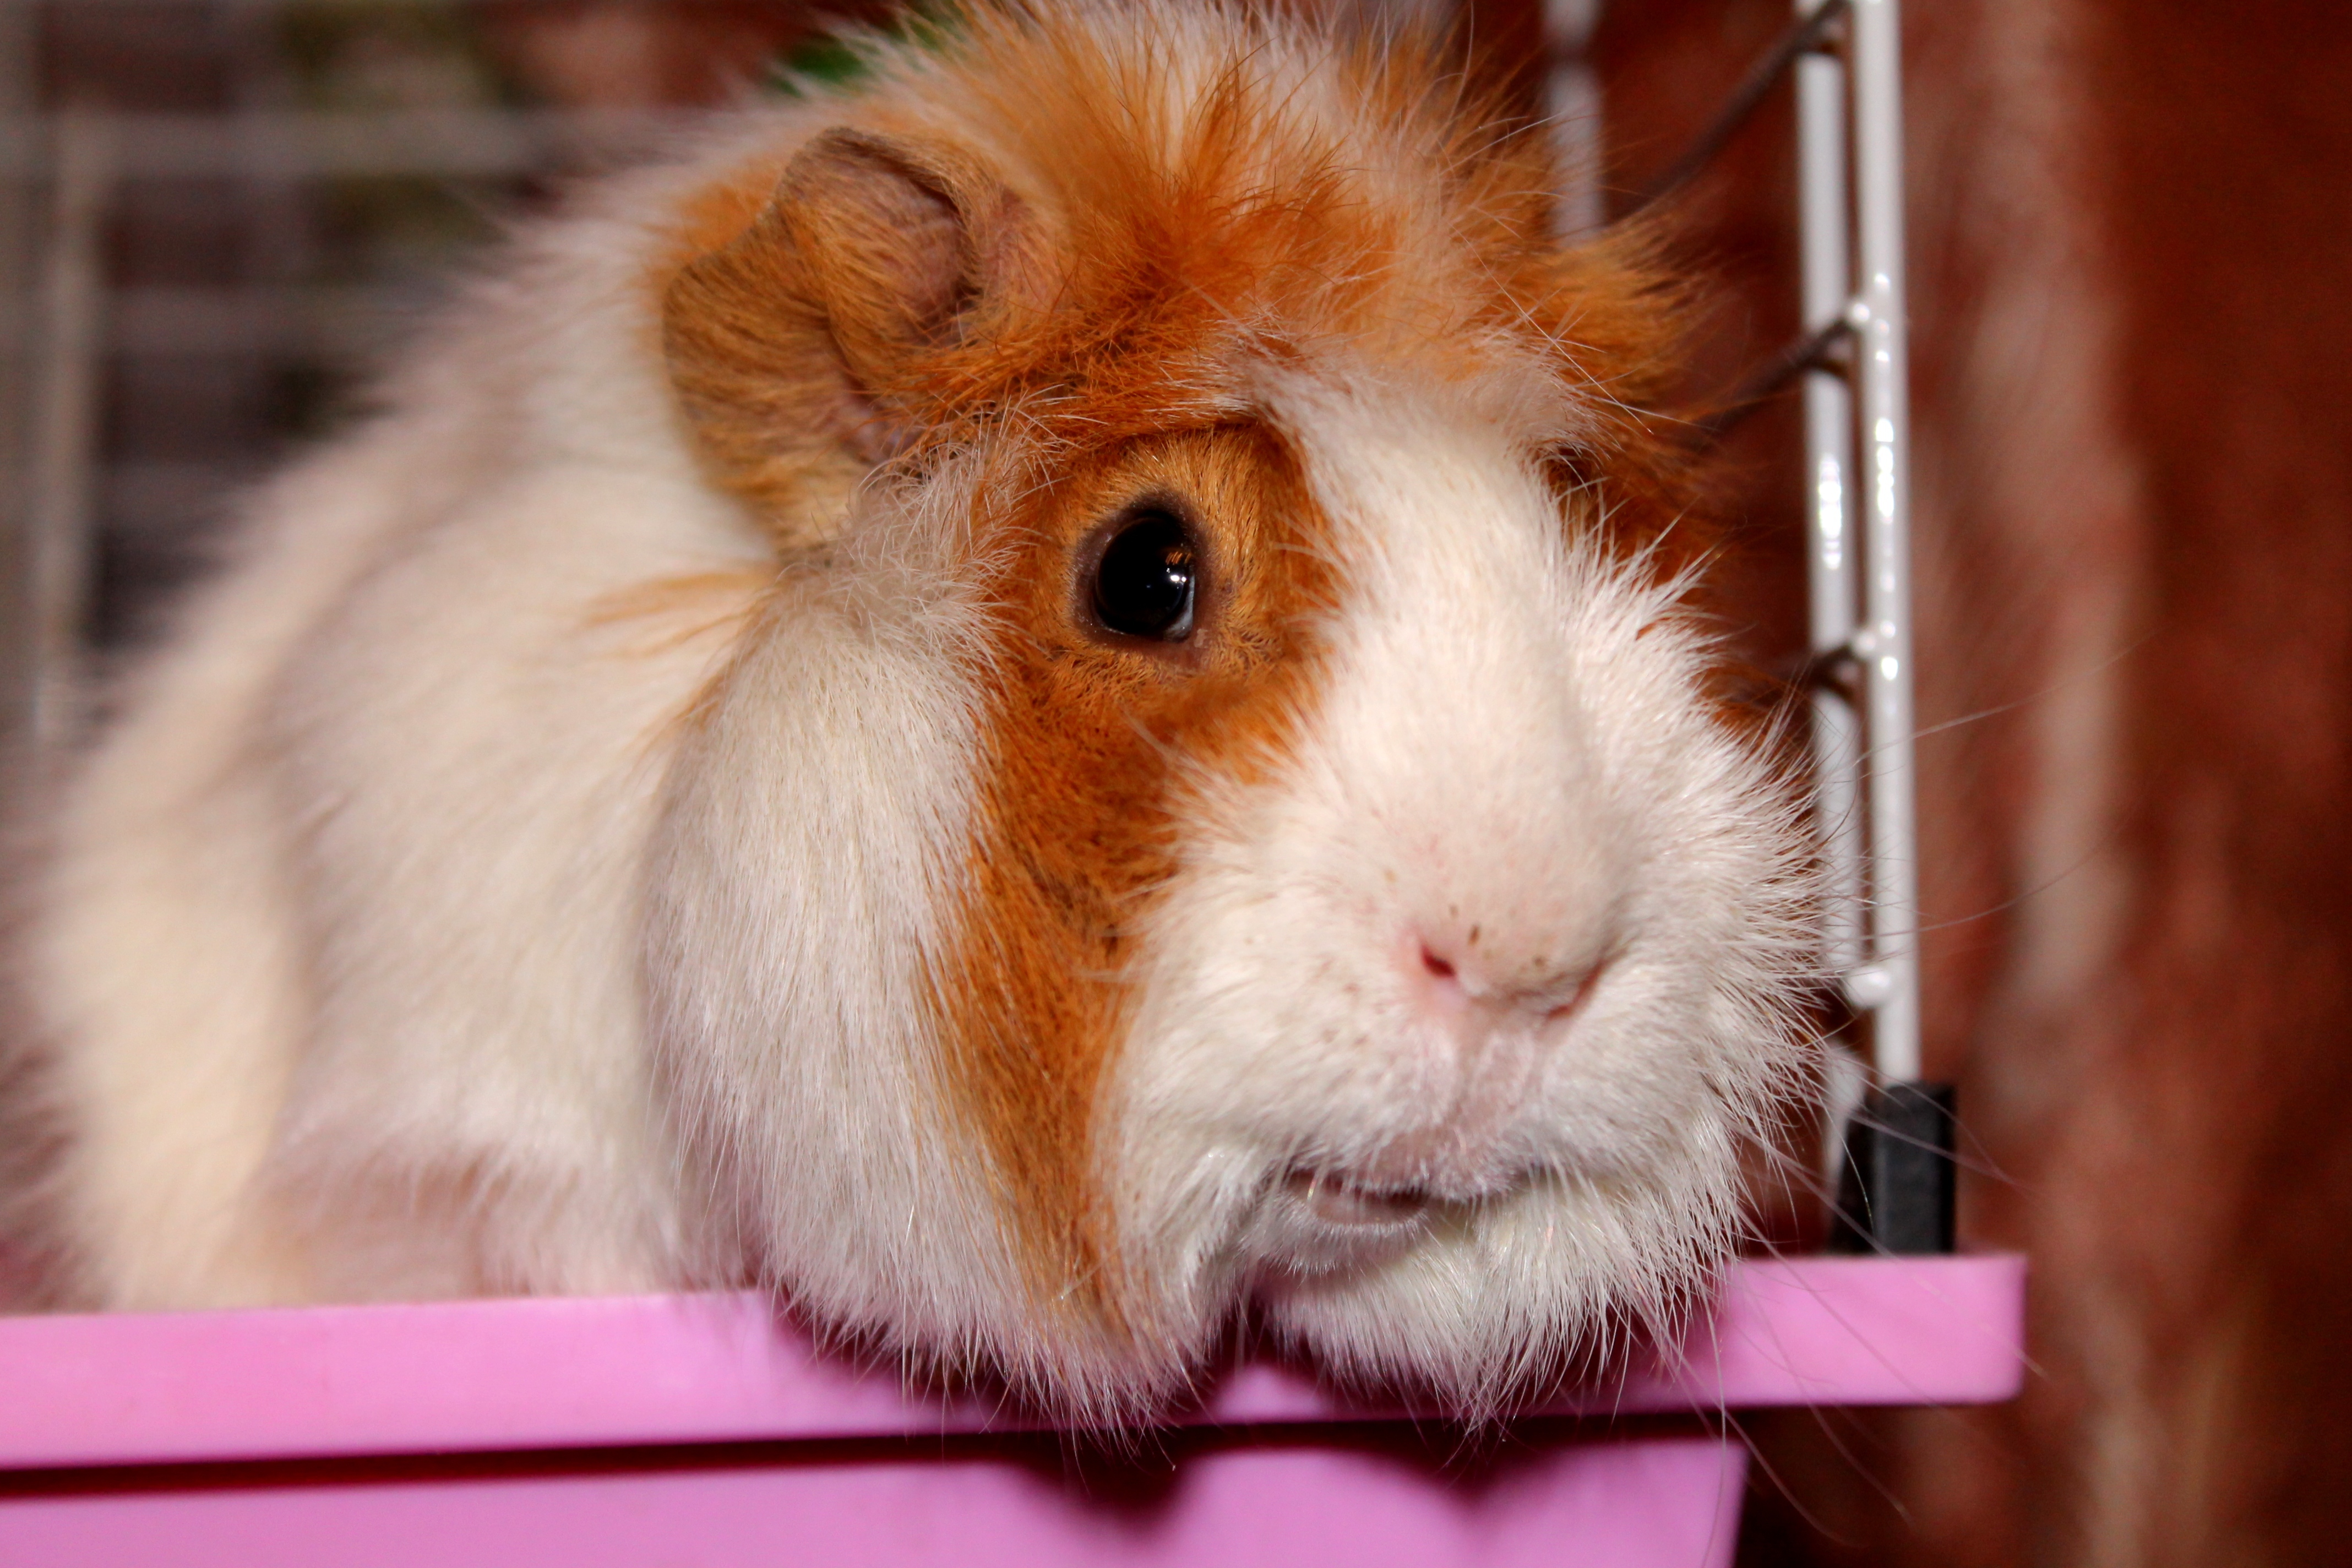 19159 download wallpaper Animals, Hamsters screensavers and pictures for free